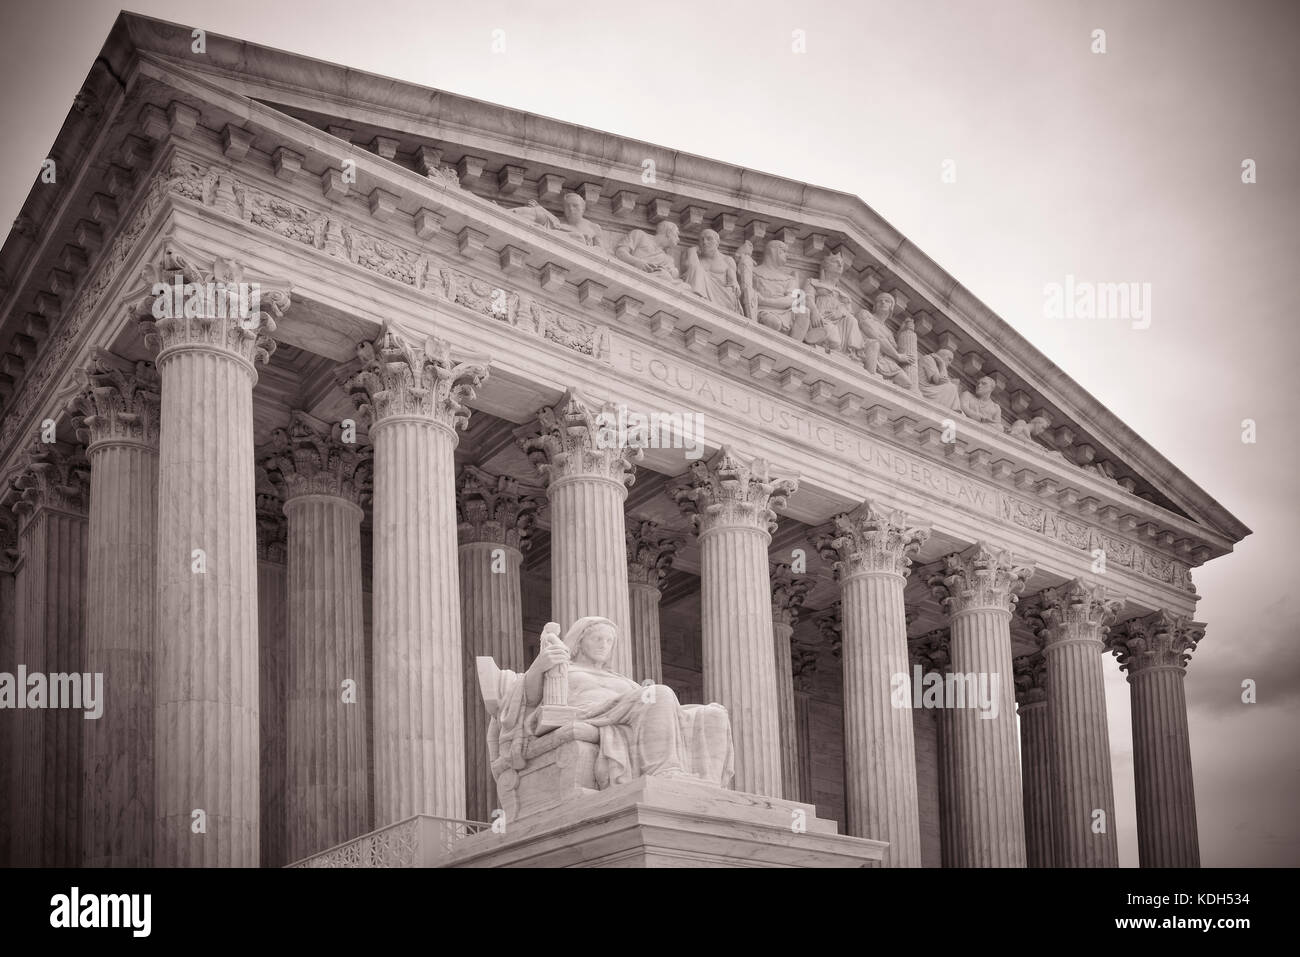 Entrance to the US Supreme Court's majestic building with the Statue of Contemplation in foreground  in Washington, - Stock Image